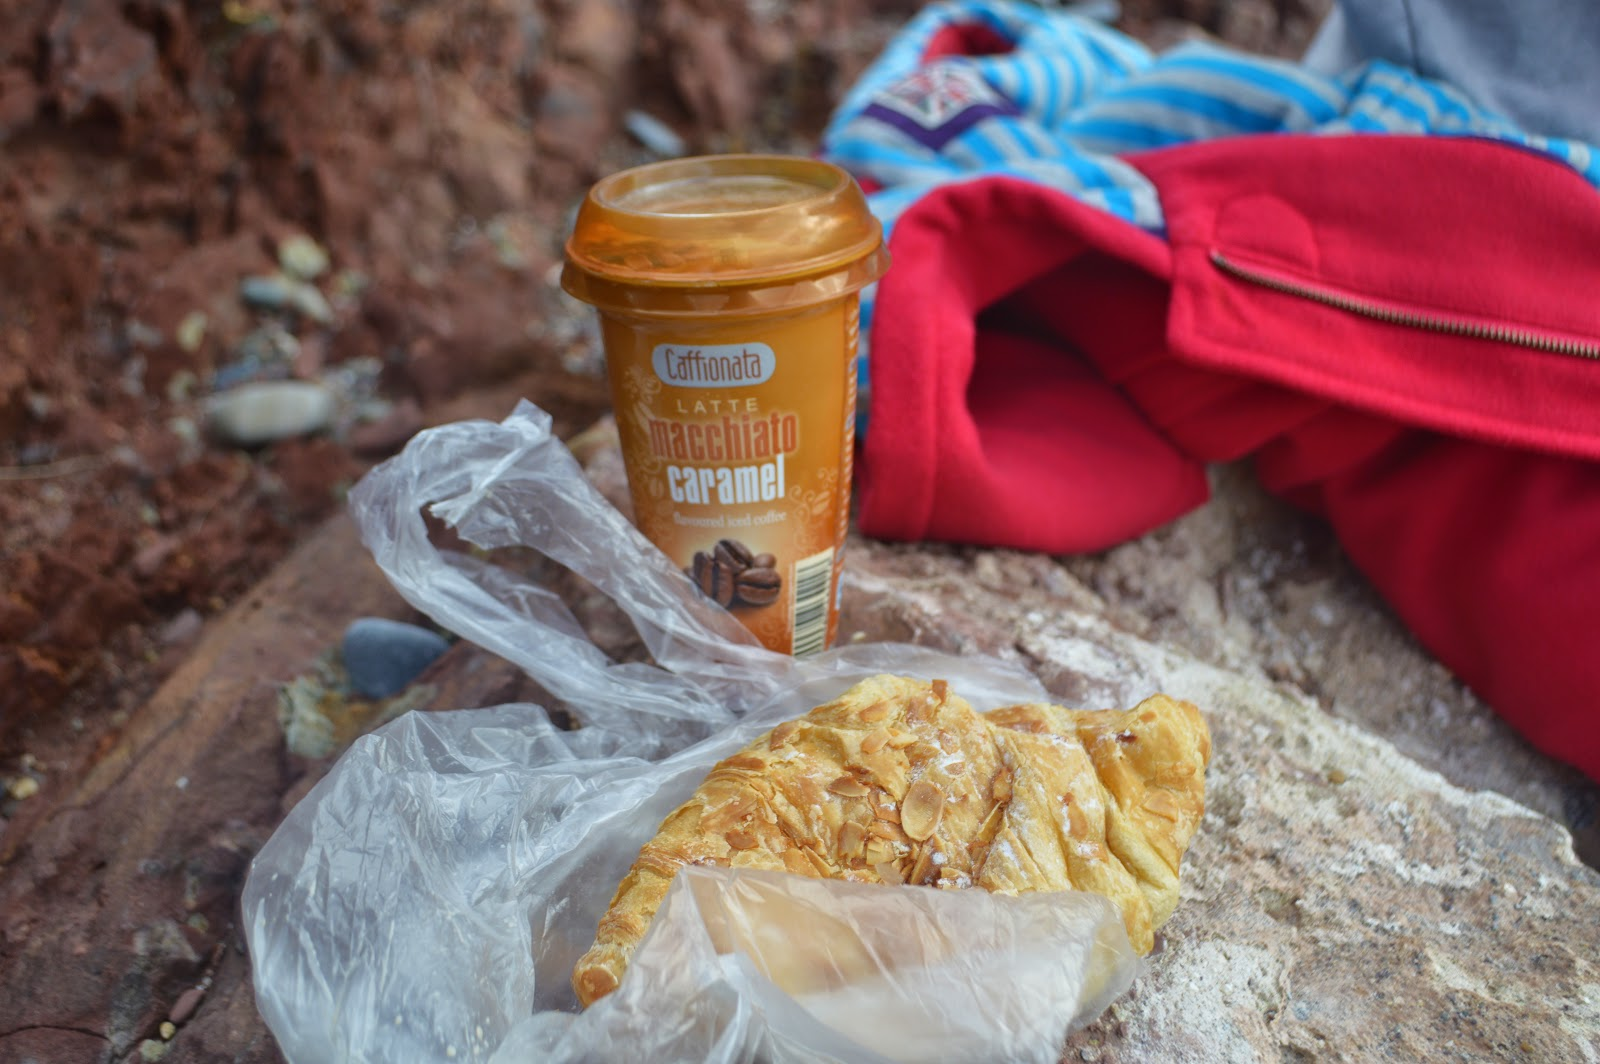 Coffee and Croissant on Manorbier Beach, Pembrokeshire, Wales